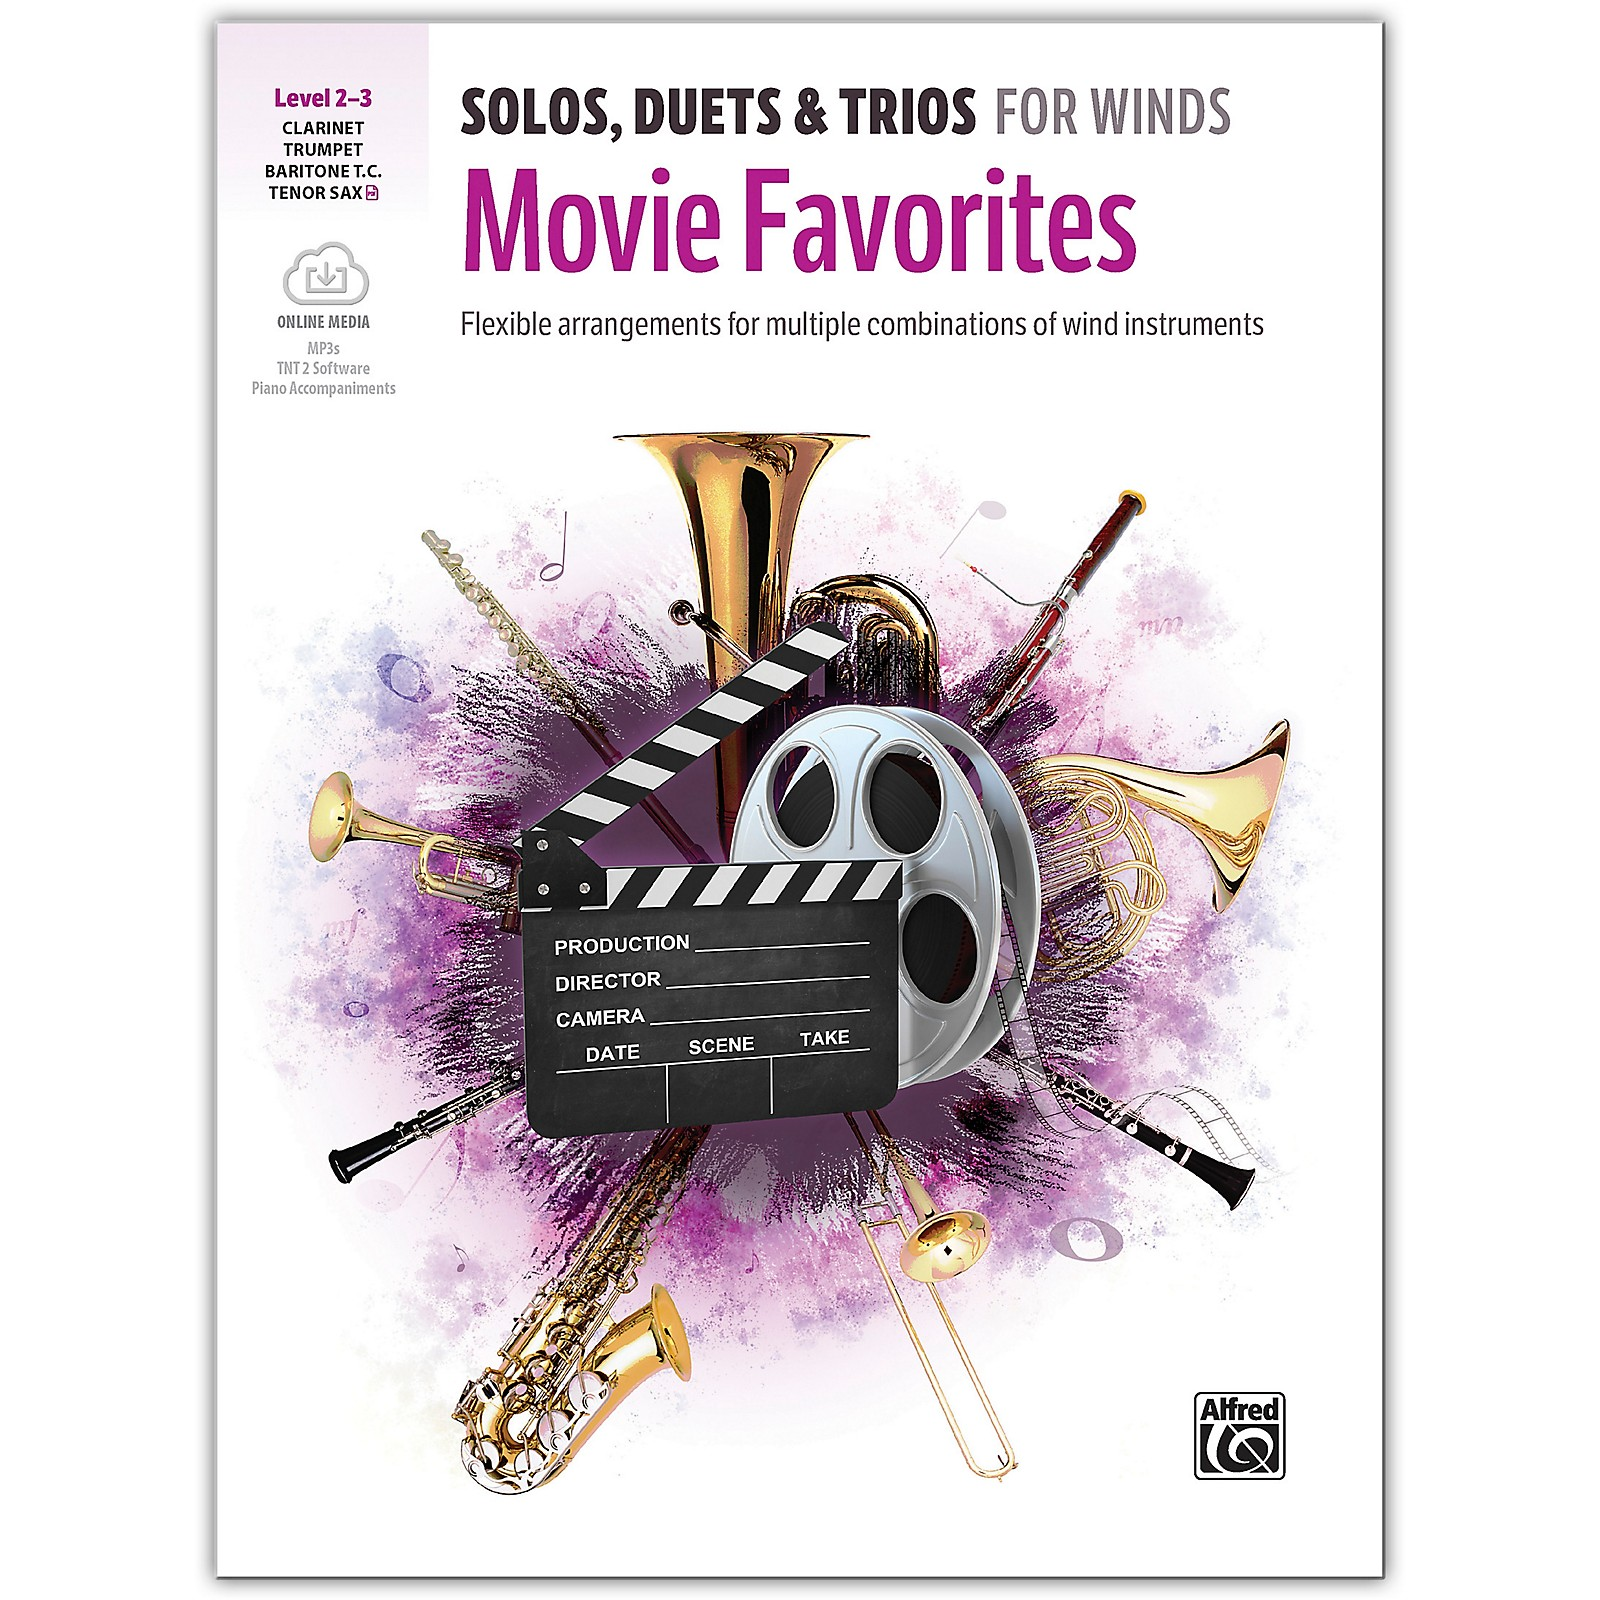 Alfred Solos, Duets & Trios for Winds: Movie Favorites Trumpet, Clarinet, Baritone TC, Tenor Sax 2-3